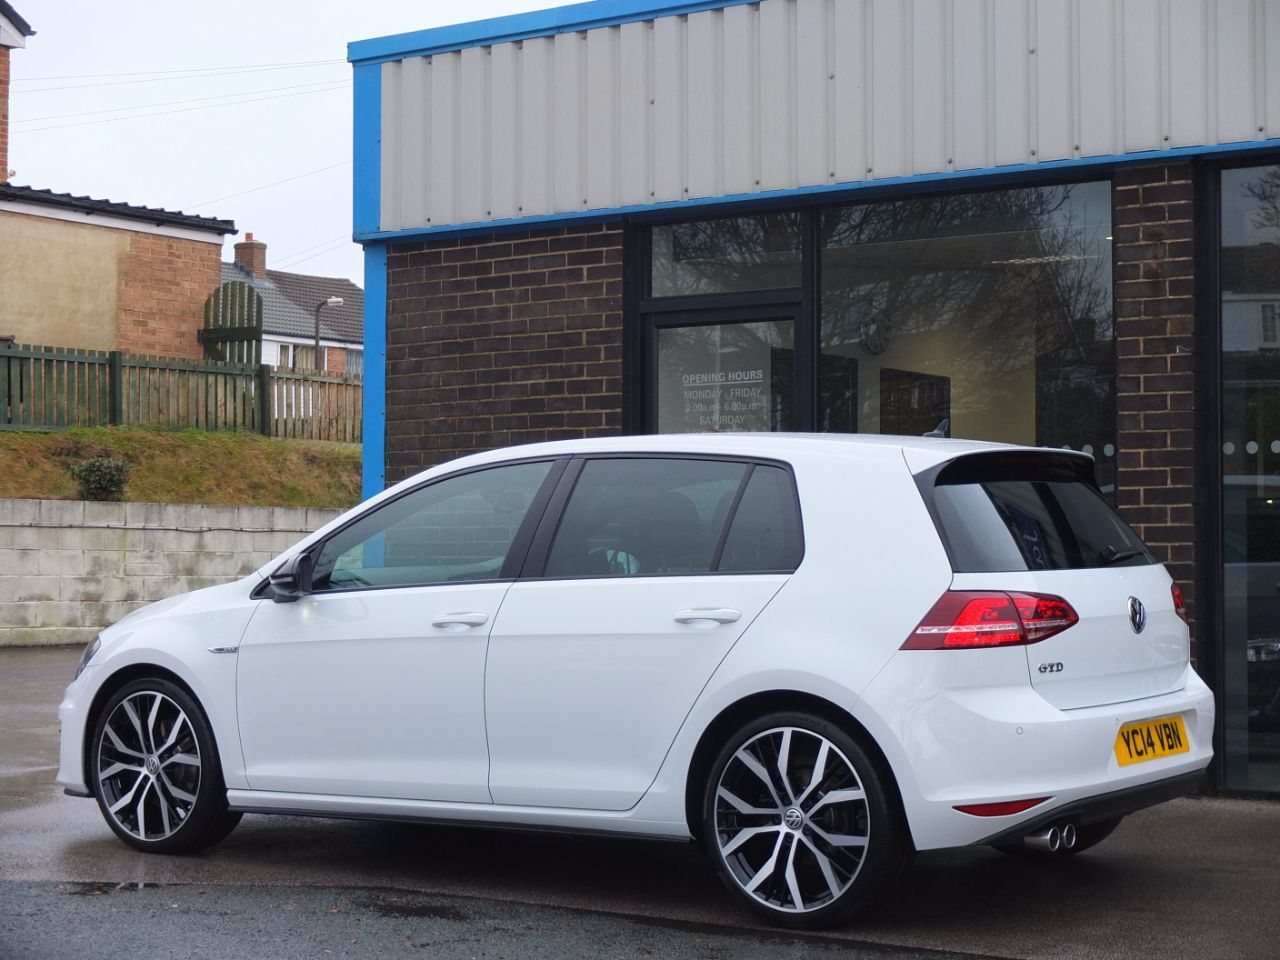 Volkswagen Golf 2.0 TDI GTD 5 door DSG Hatchback Diesel Pure White